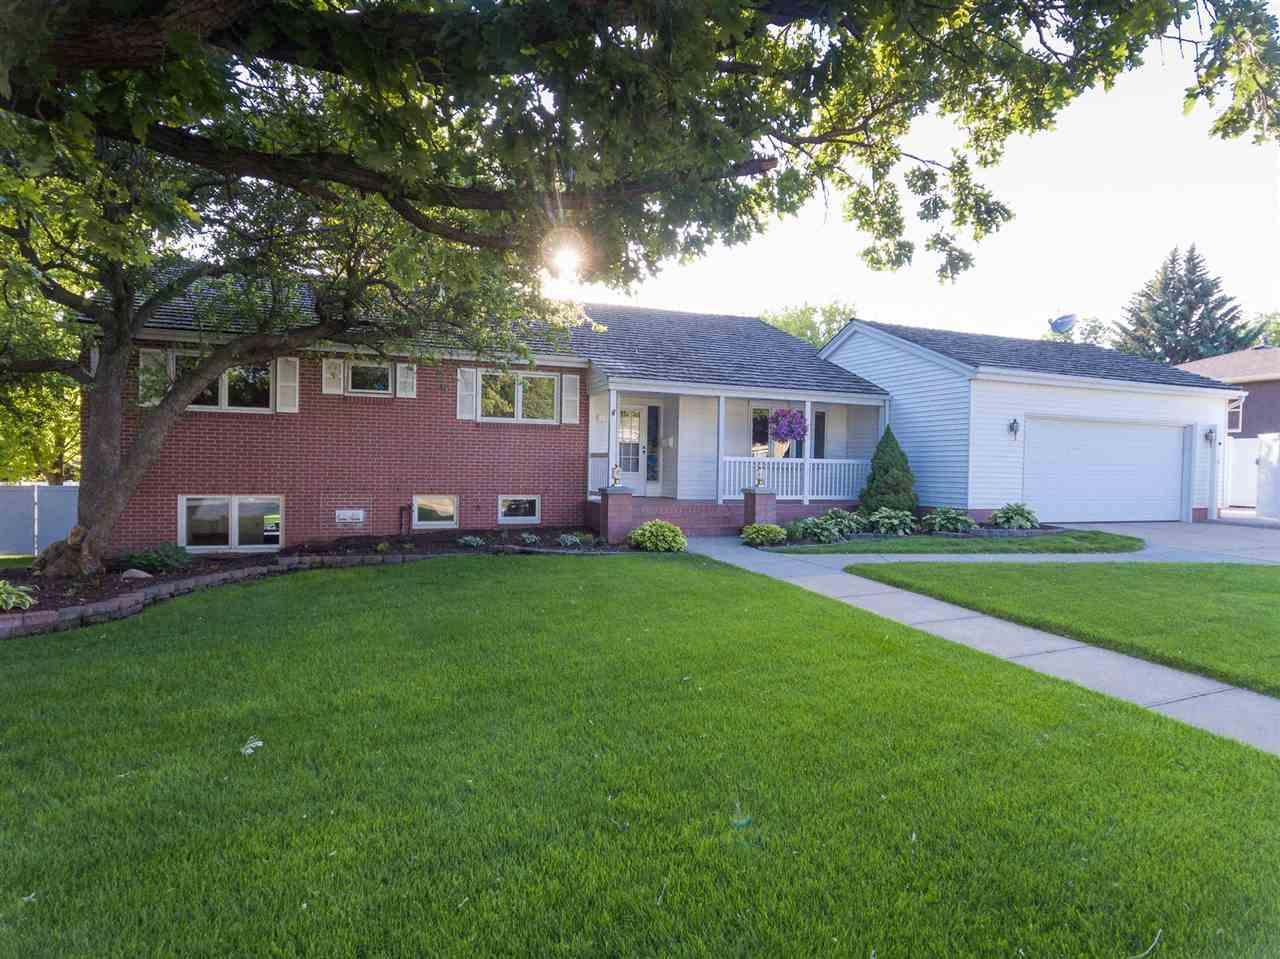 3320 5th Ave Kearney Ne Mls 20841 Coldwell Banker